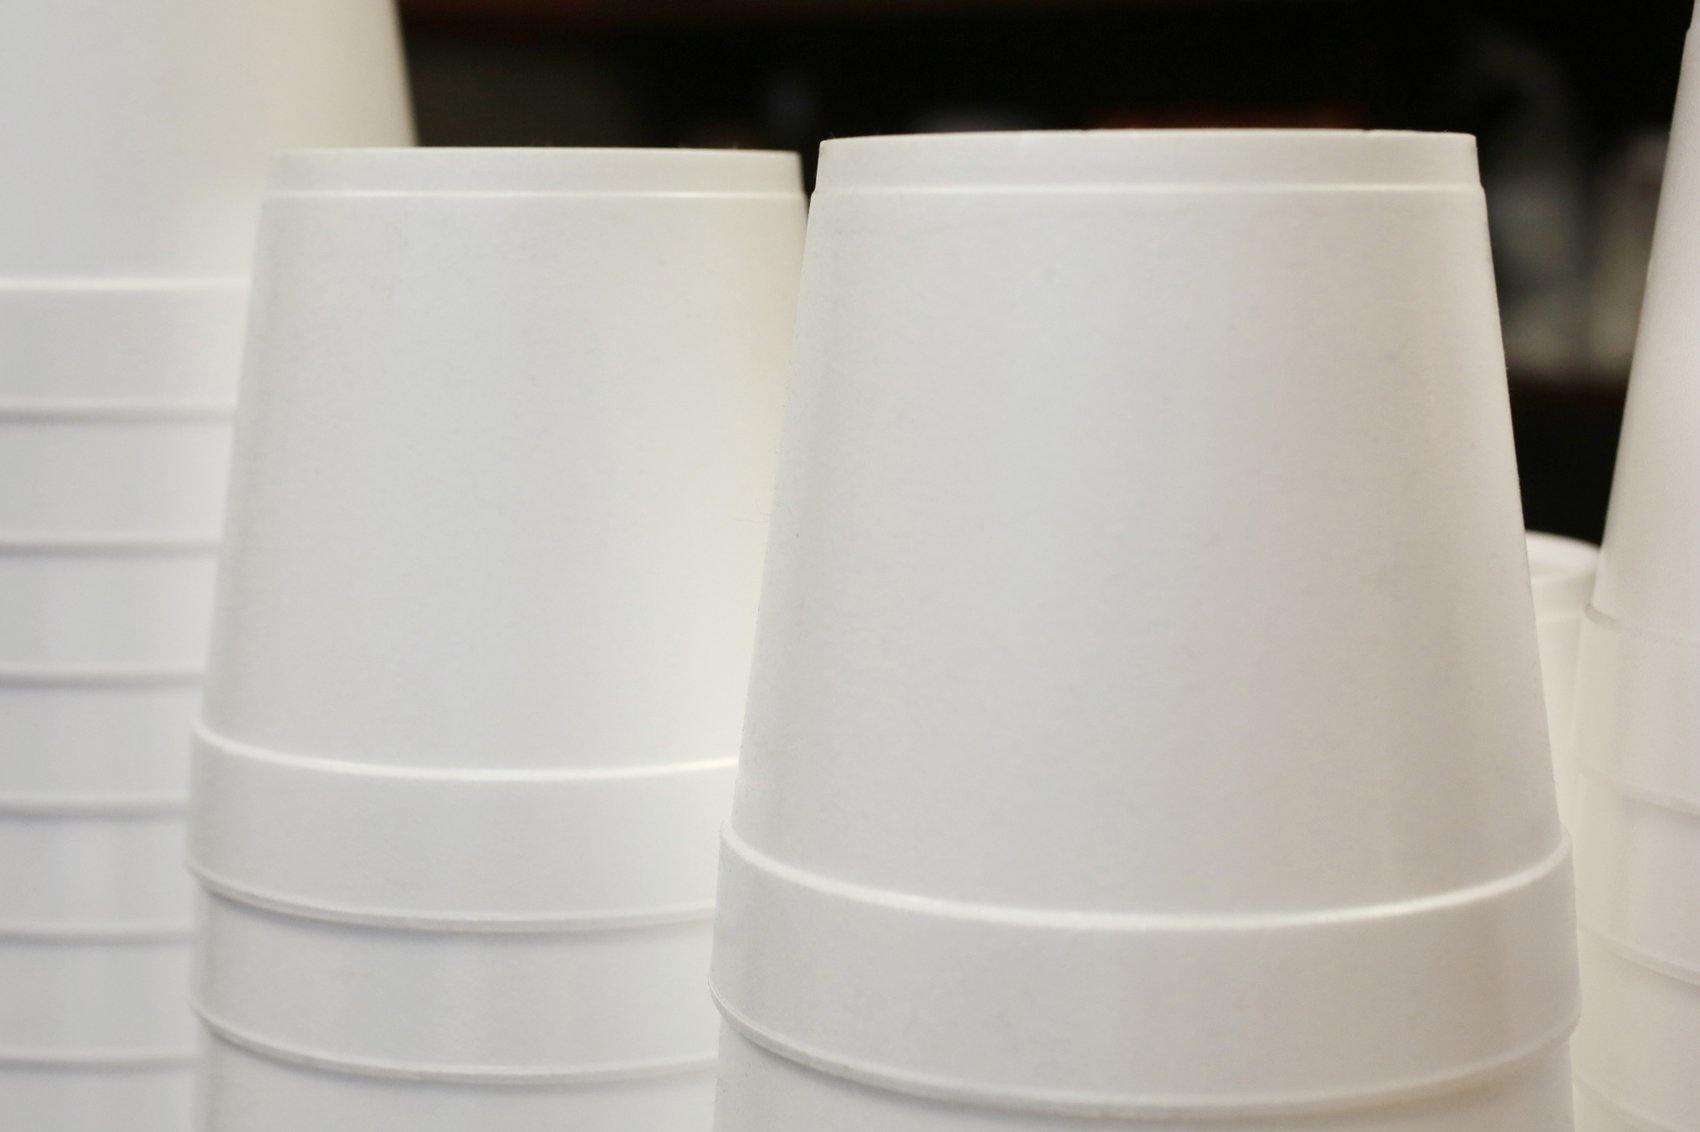 , Maine becomes 1st state to ban single-use foam containers, The Circular Economy, The Circular Economy